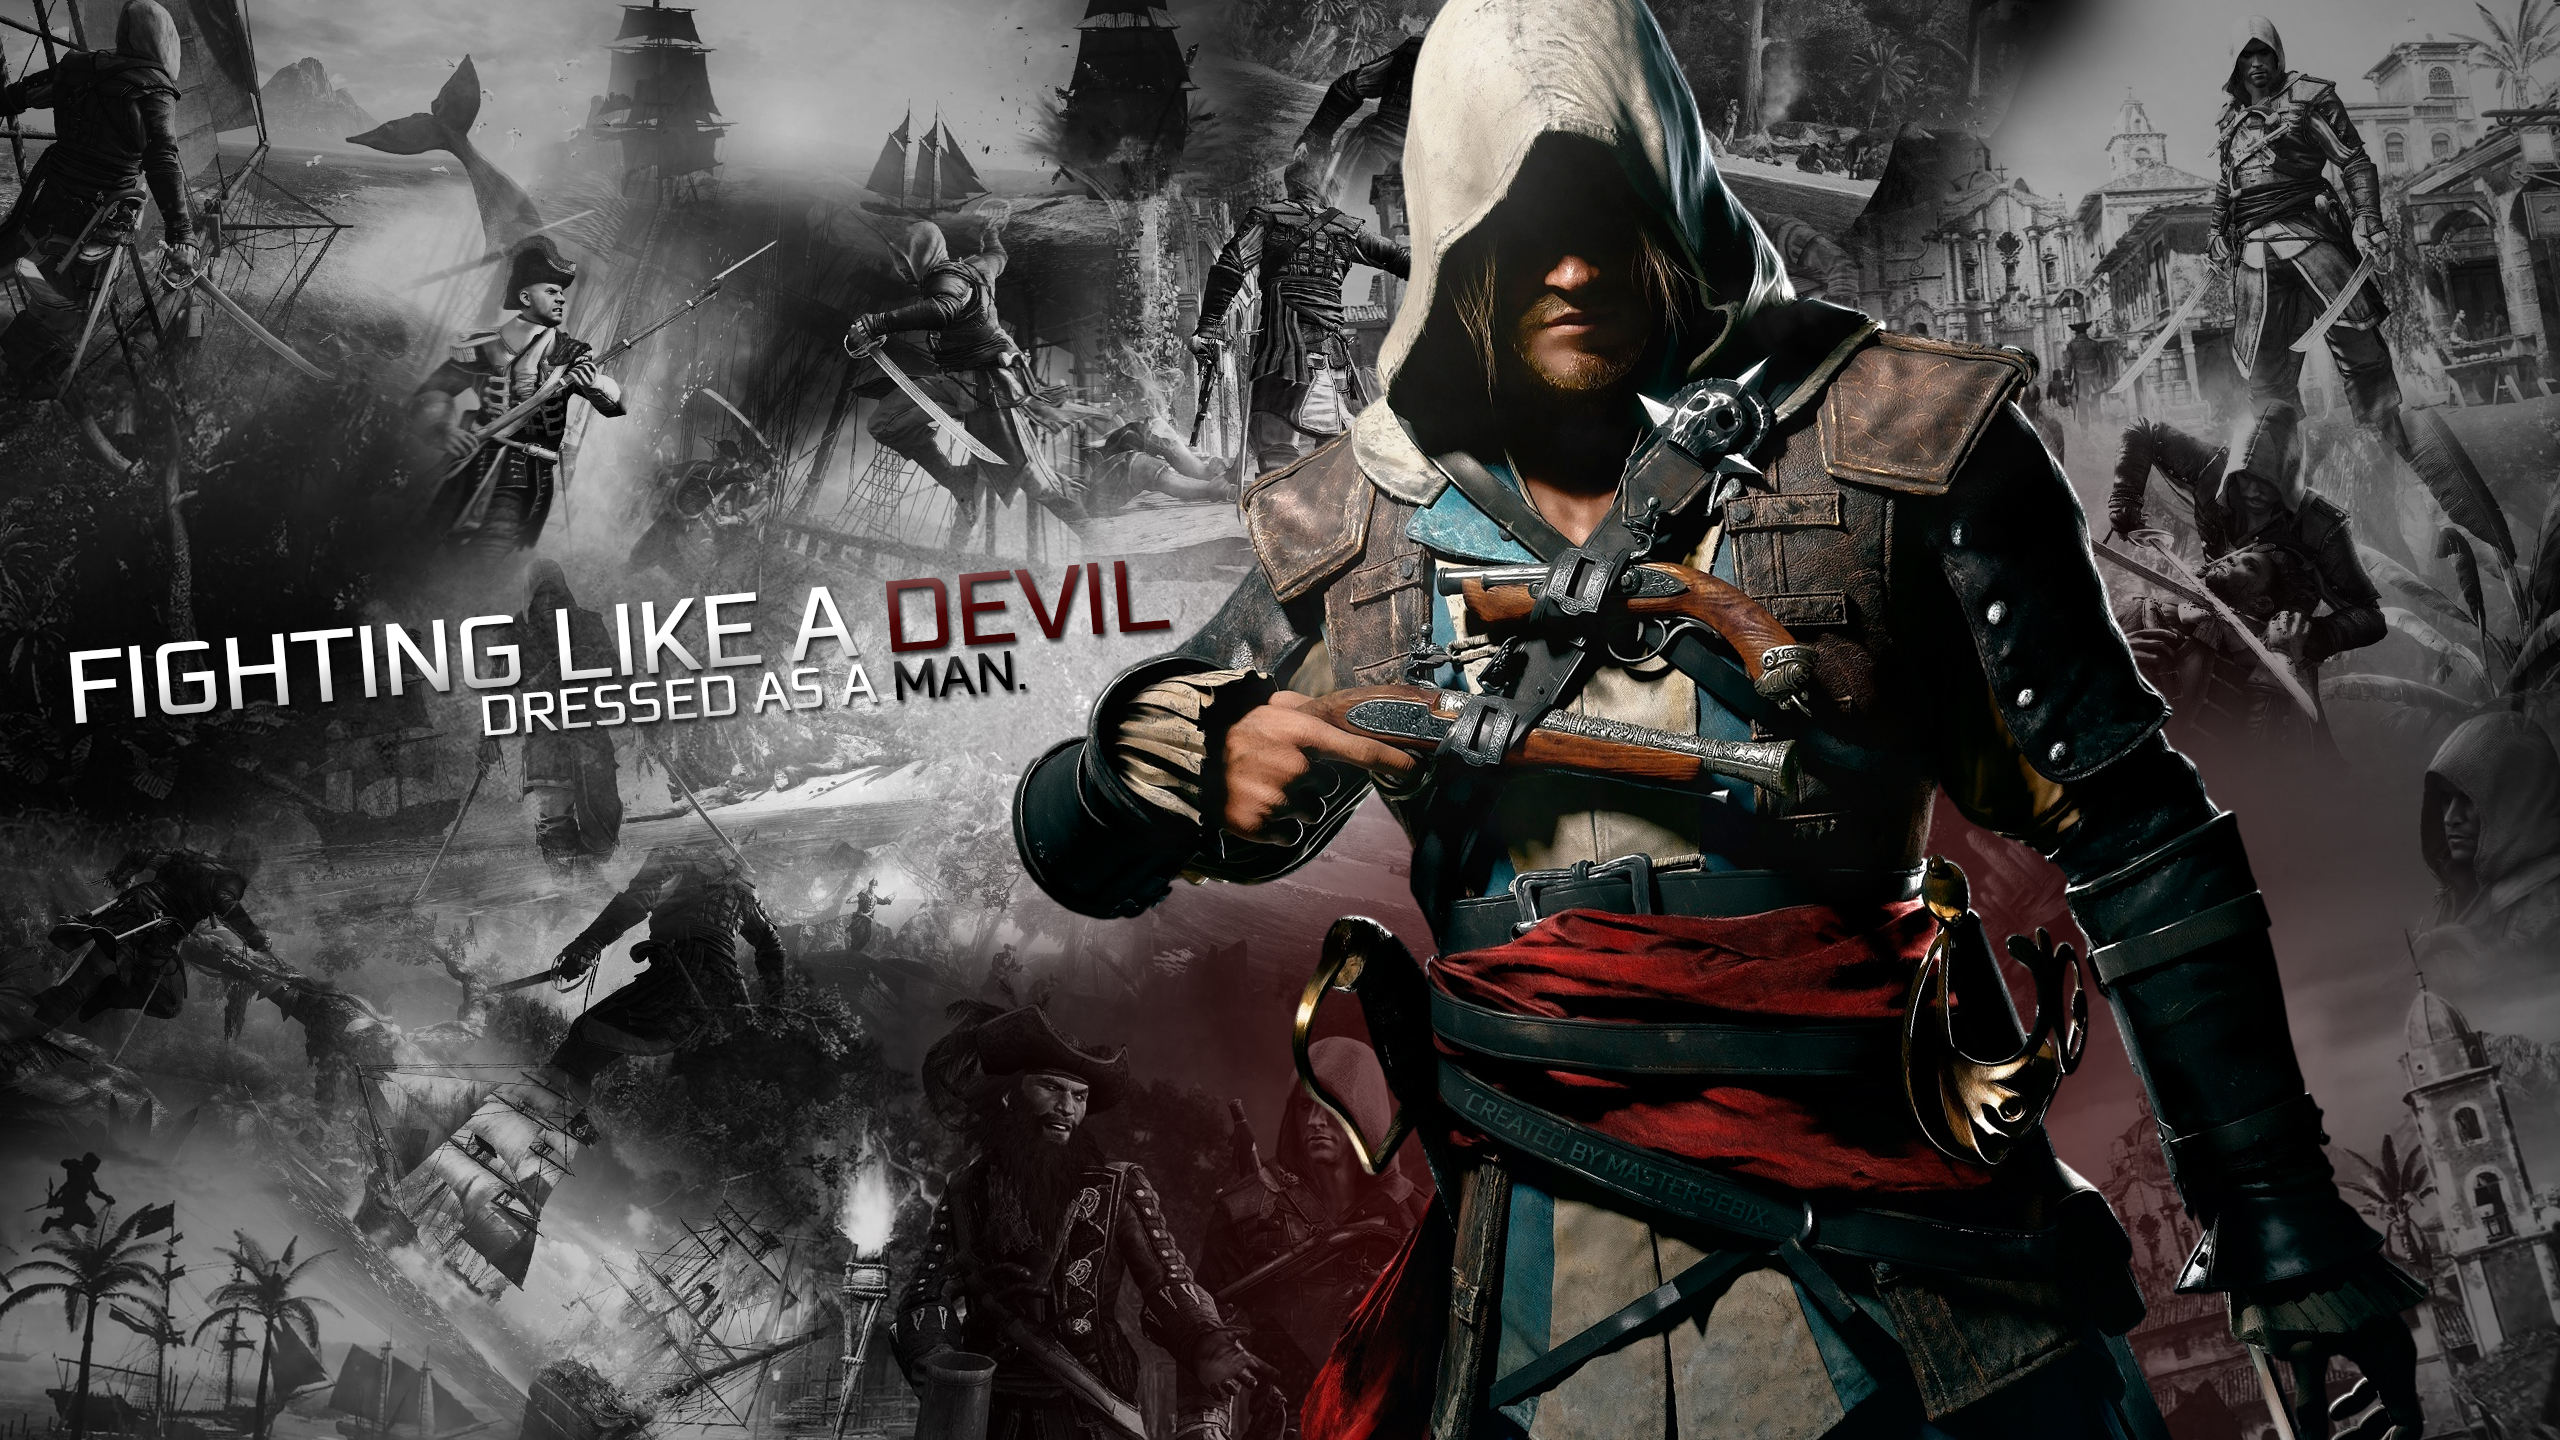 Assassins Creed 4 Multiplayer Male wallpaper 2560x1440